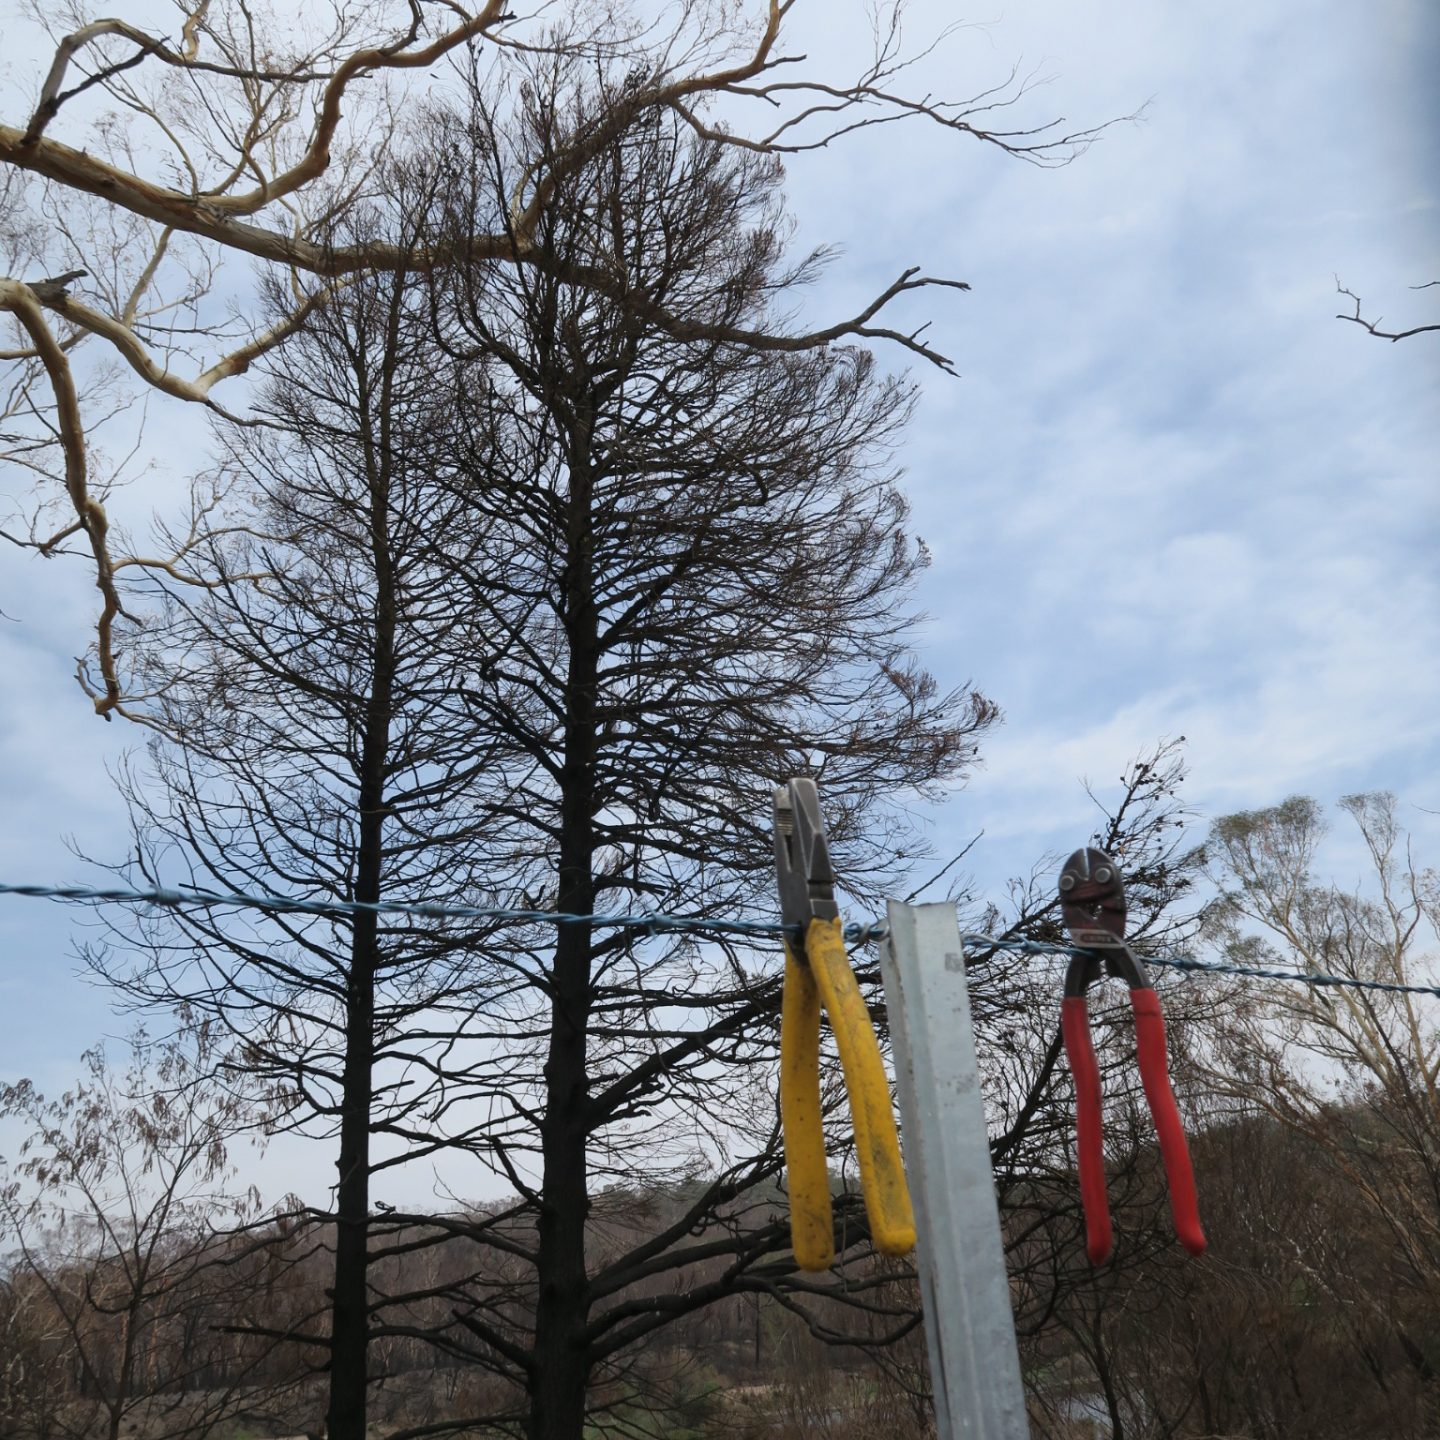 Two blackened trees in the background and a charred landscape behing. There is a line with seccateurs hanging off it.